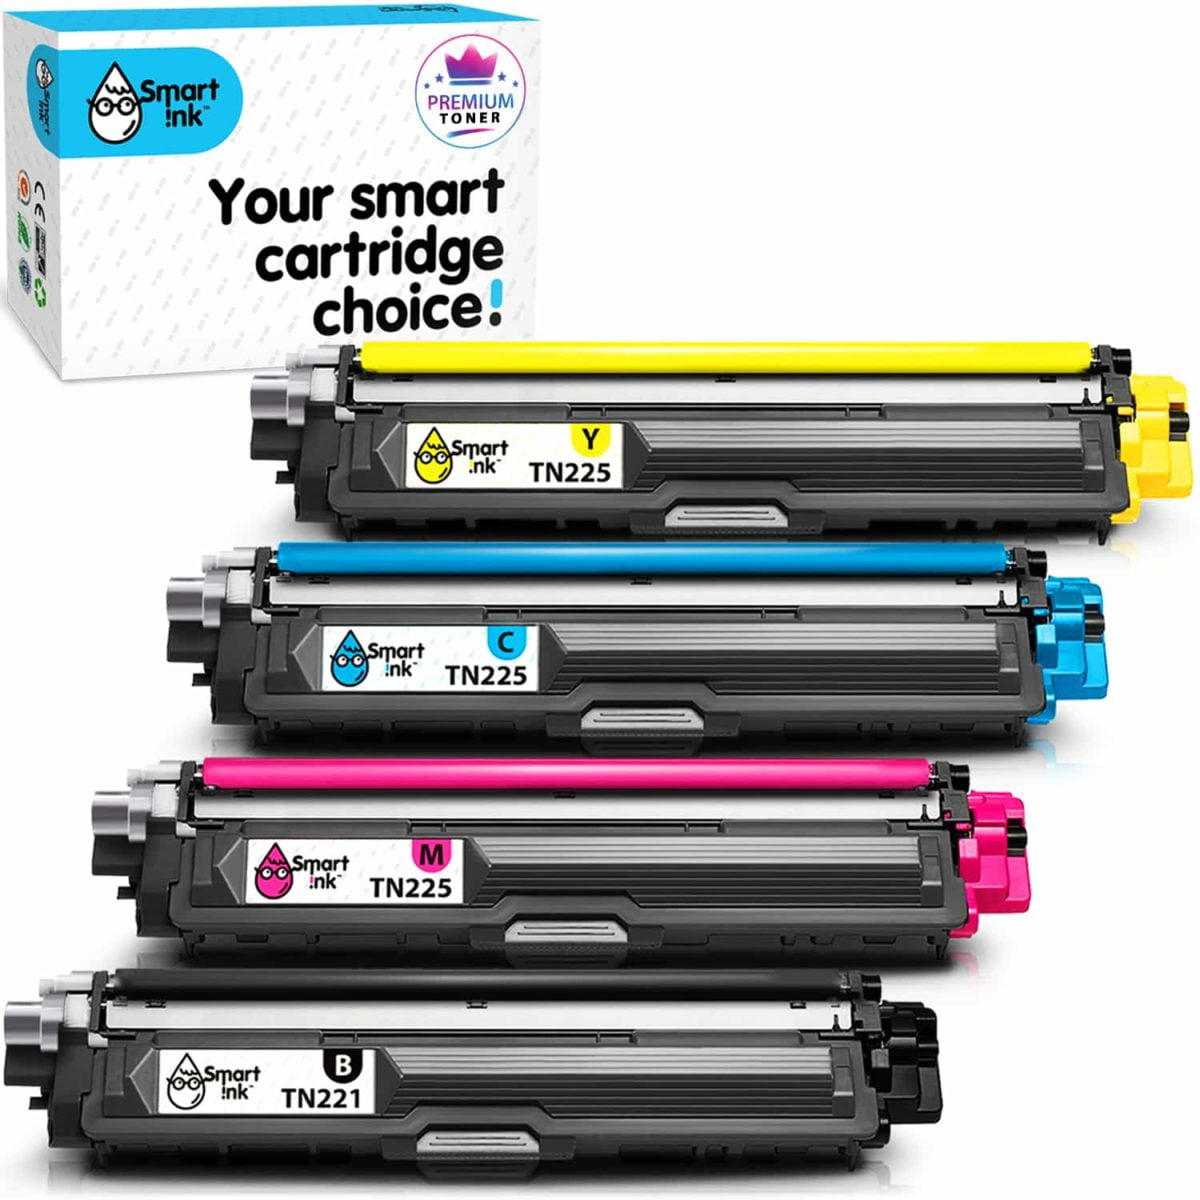 TN221, TN225. Smart Ink Toner Cartridge Replacement for Brother TN 221, TN 225 (4 pack), Compatible